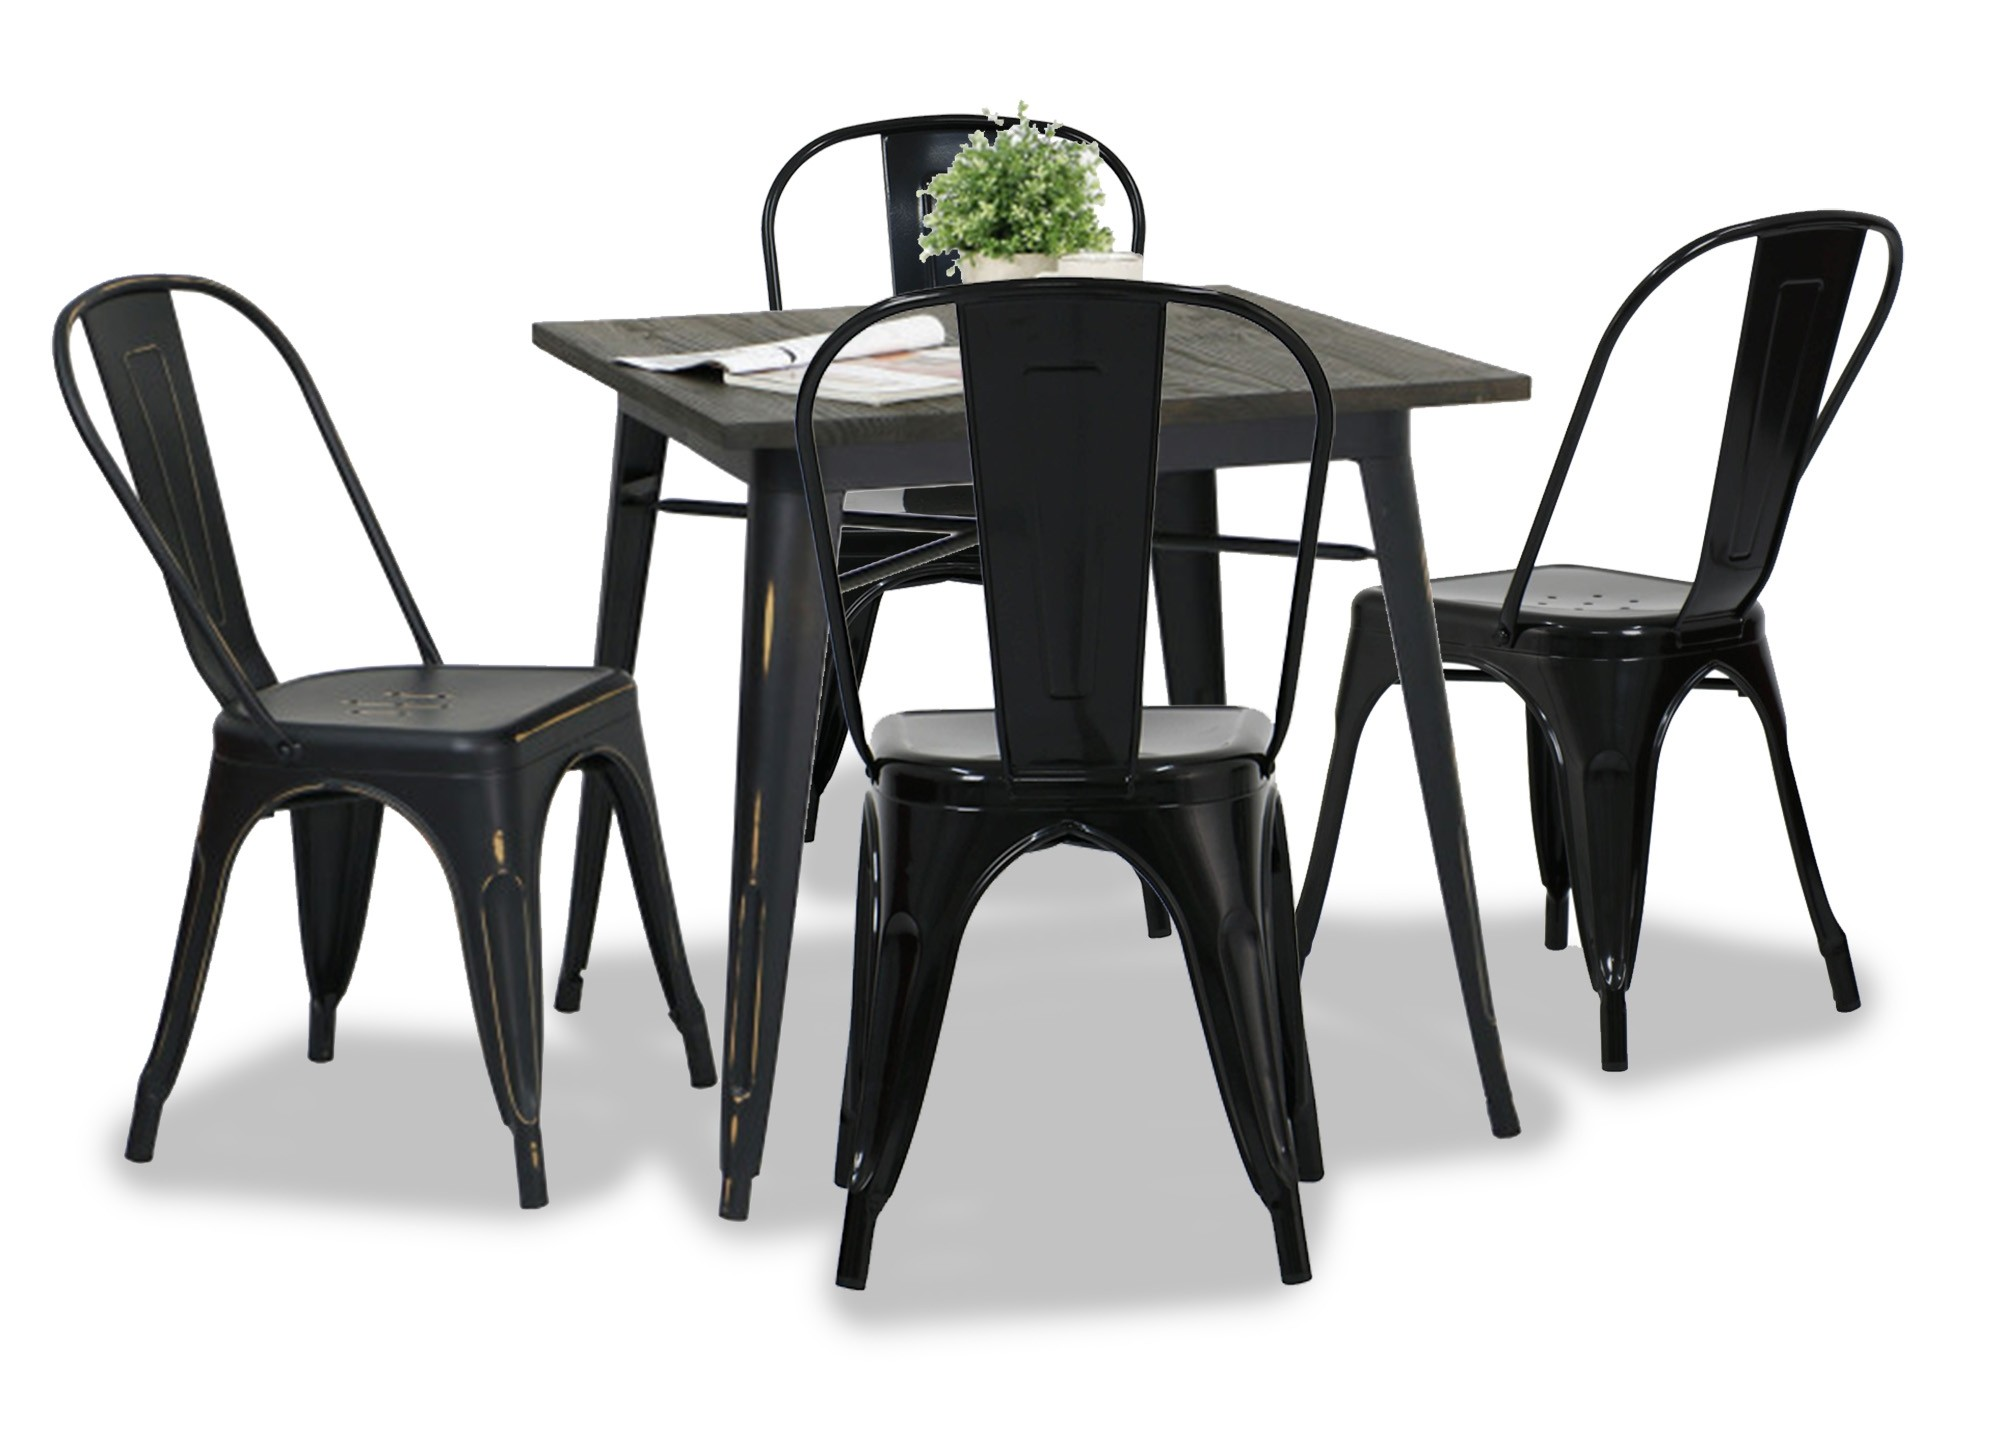 Modus Metal Dining Table Antique Black Dining Set 14  : 0139 from www.fortytwo.sg size 2000 x 1435 jpeg 208kB